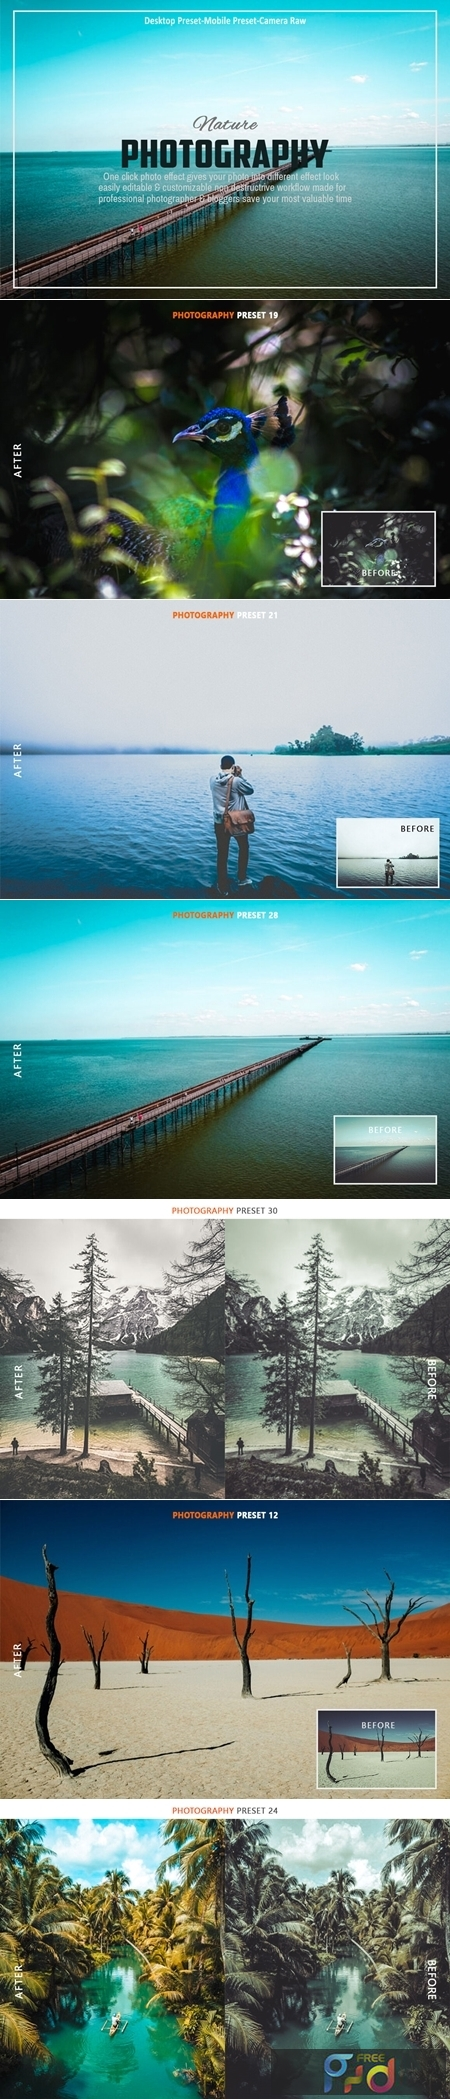 Nature Photography Lightroom Preset Collection 3603258 1